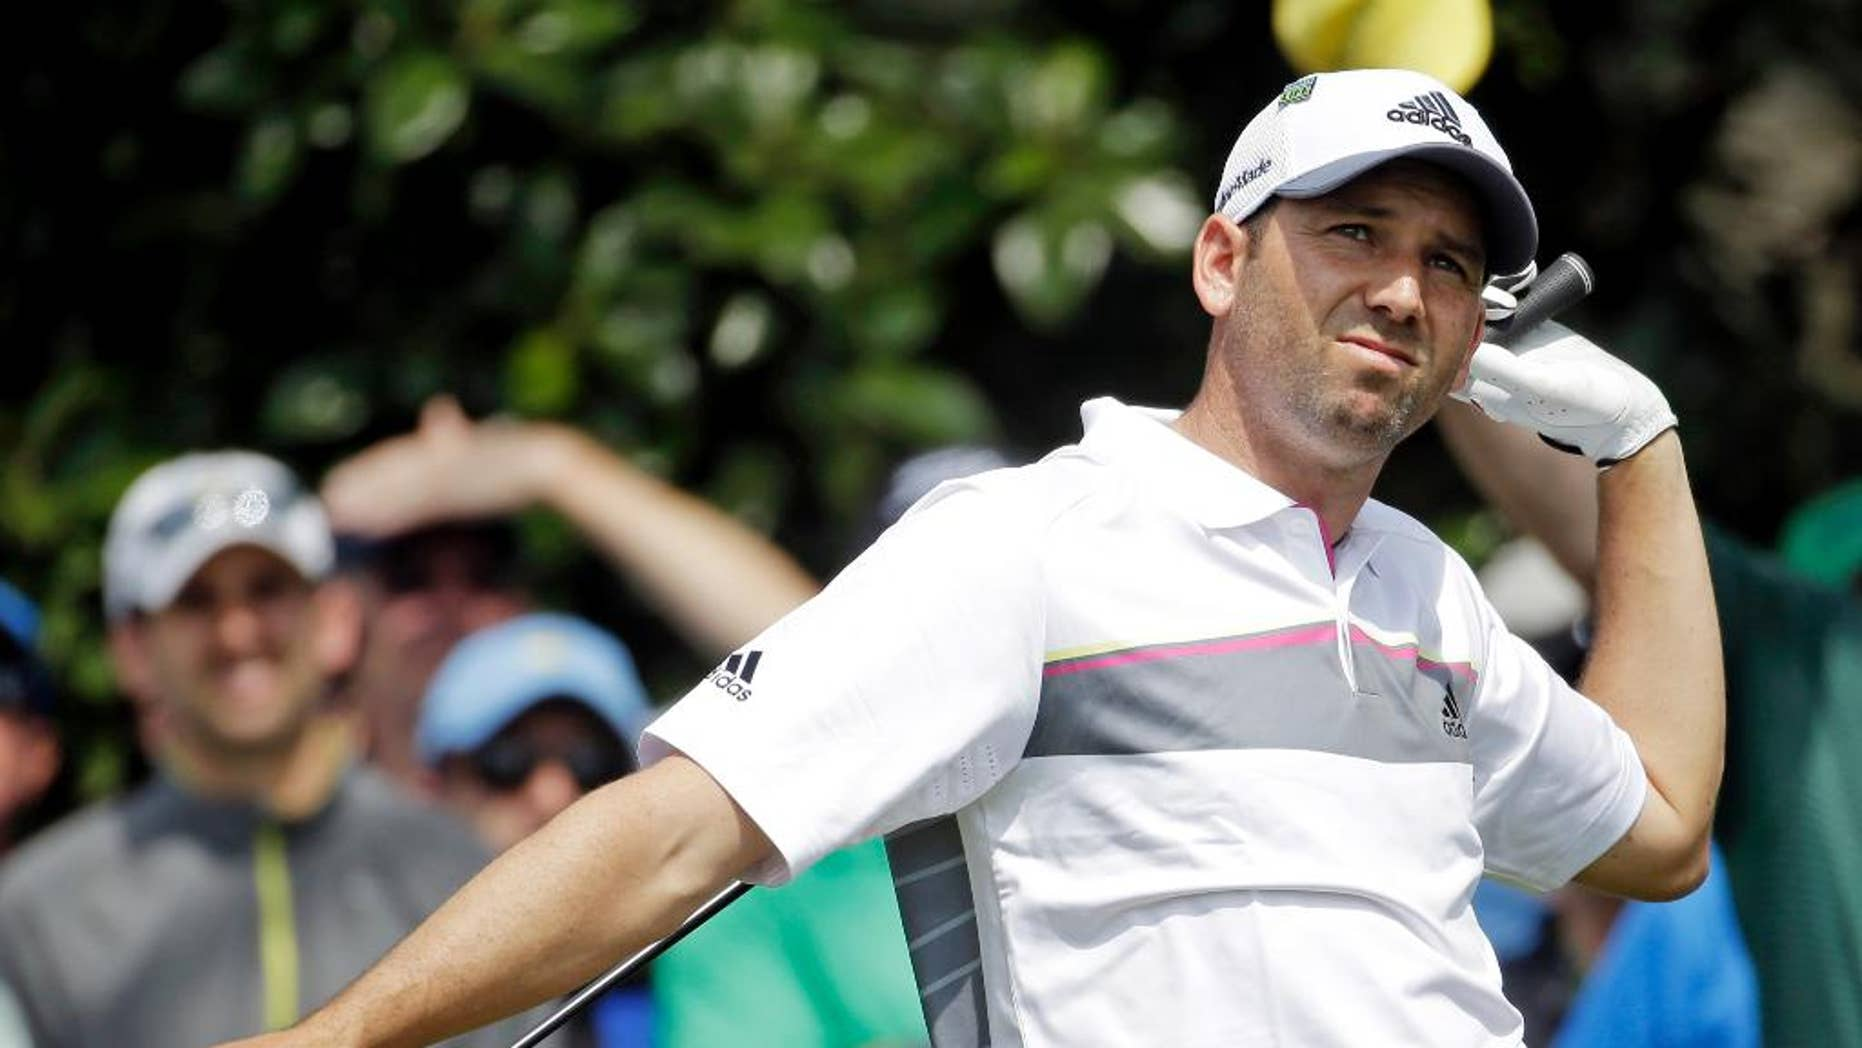 Sergio Garcia, of Spain, watches his tee shot on the ninth hole during the second round of the Masters golf tournament Friday, April 11, 2014, in Augusta, Ga. (AP Photo/Darron Cummings)